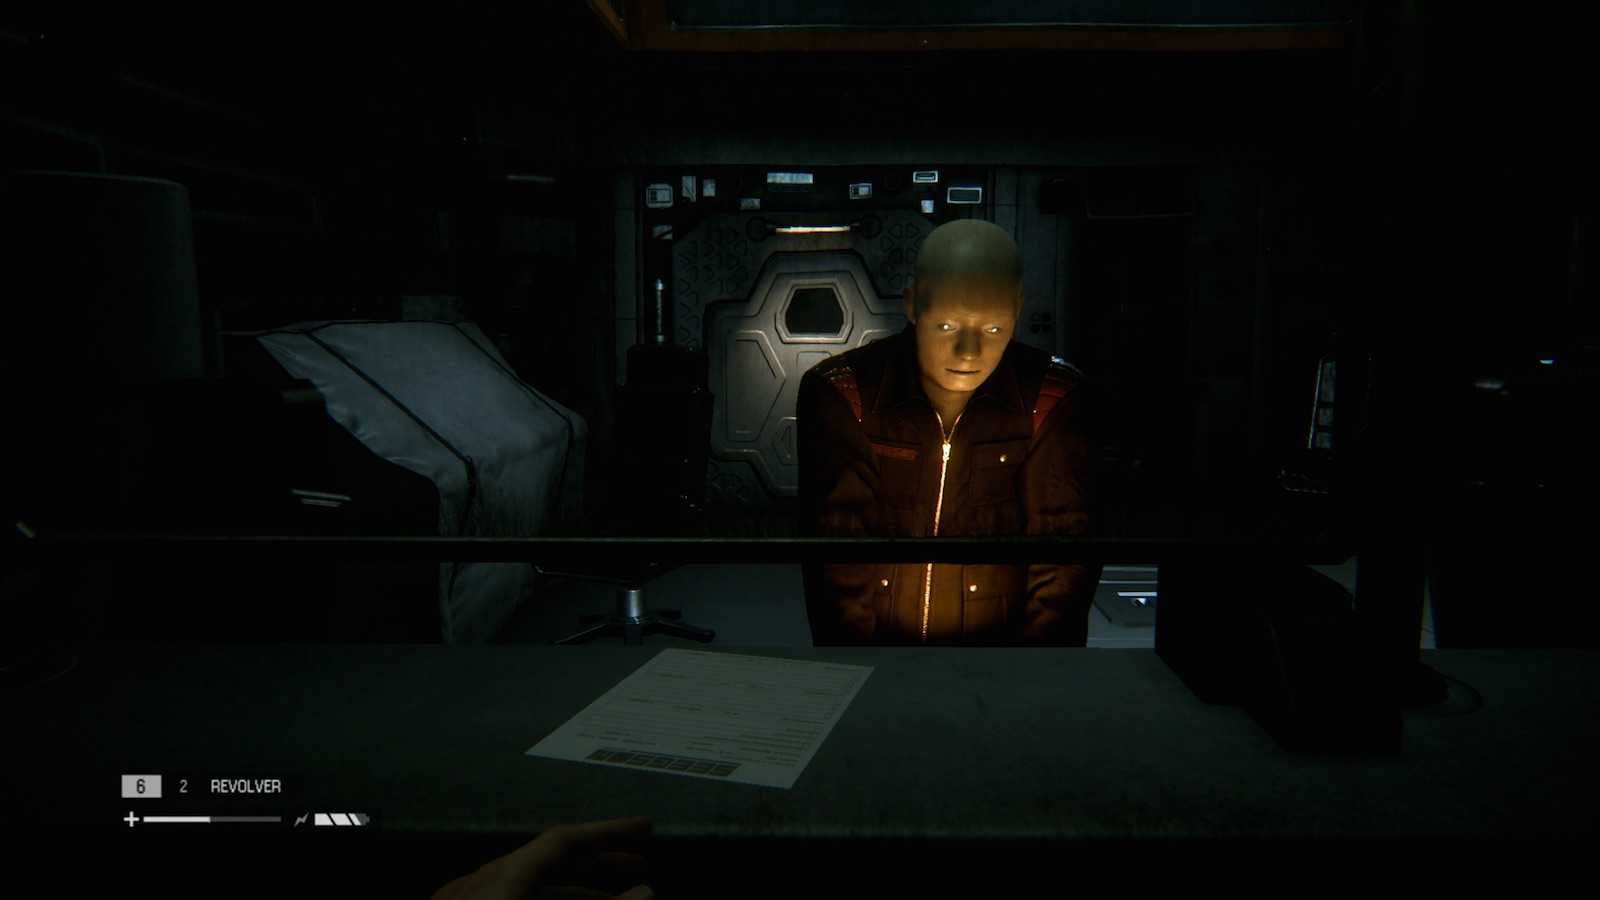 Alien Isolation 2014 (PC)